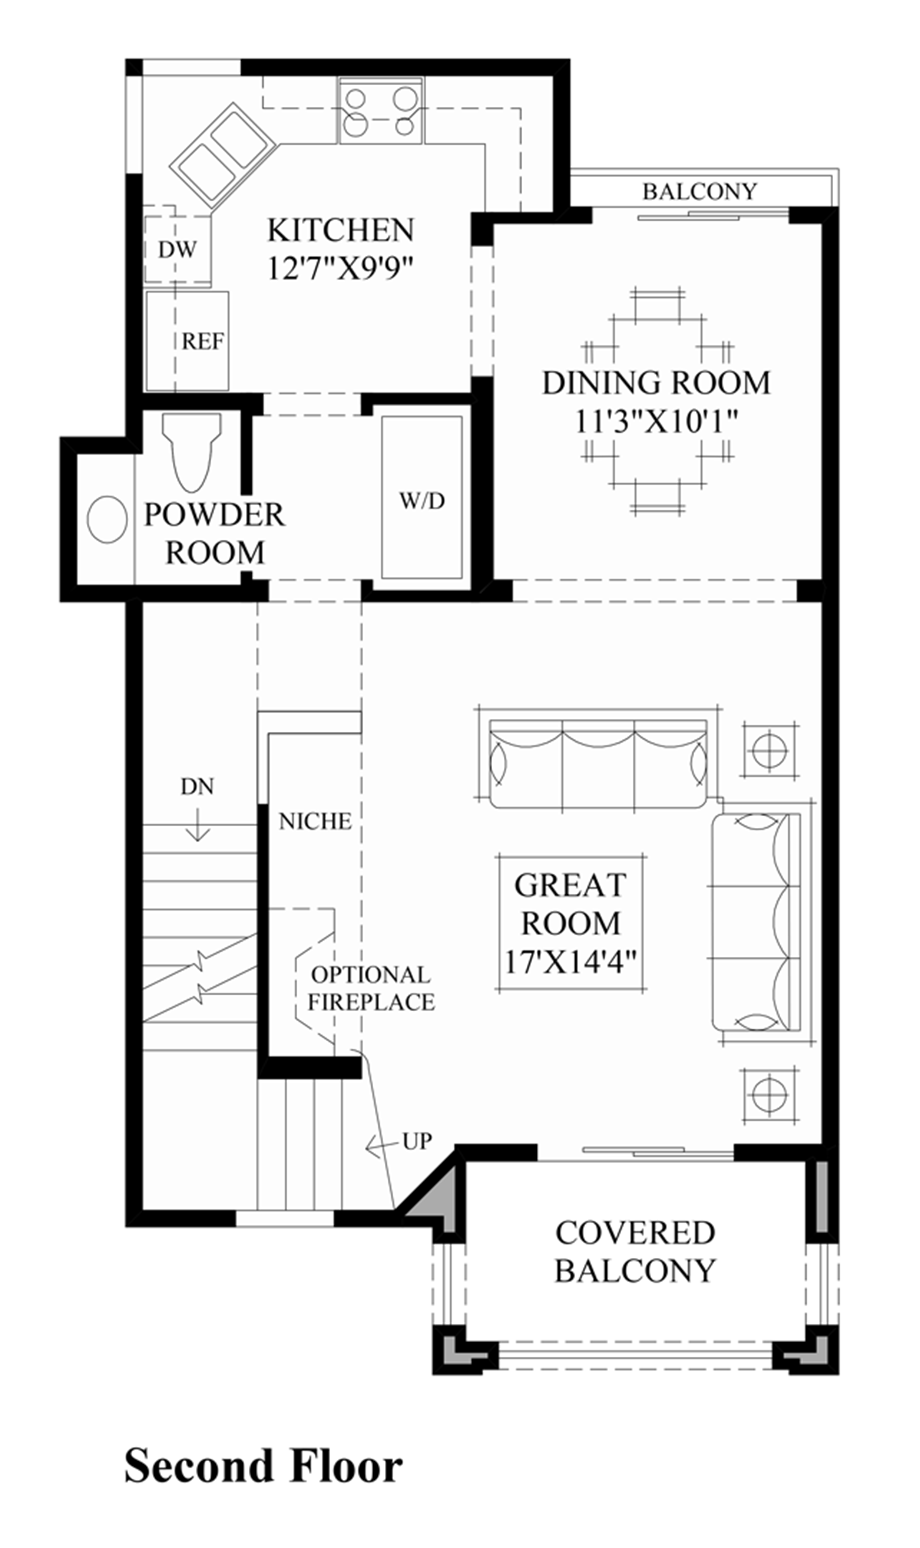 F9d55fe966d7427a One Story Mediterranean House Plans House Plans Mediterranean Style Homes likewise Tour moreover Fiore furthermore Houses For Rent In Chicago in addition Hurricane Resistant. on ryan homes floor plans